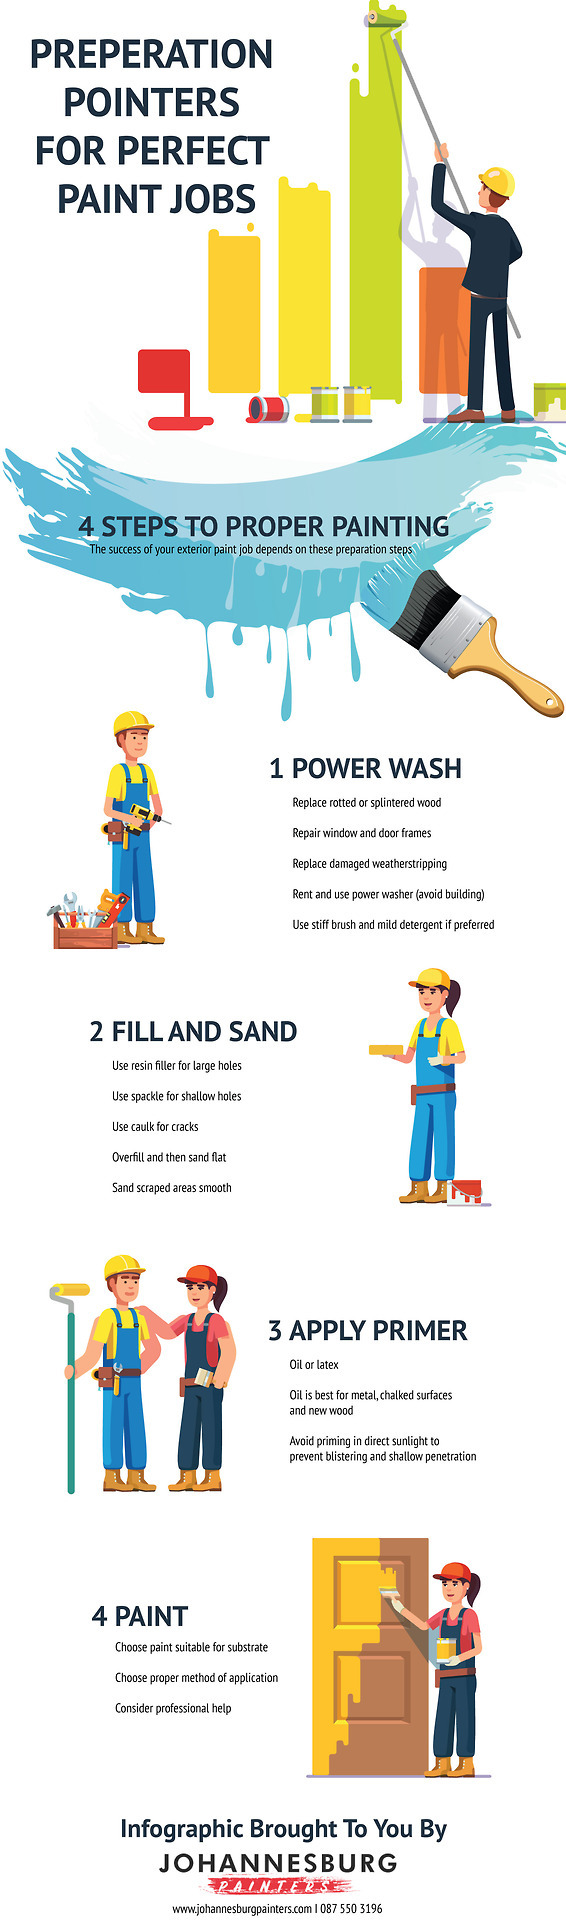 Prepare for a Painting Job like a Pro-infographic-plaza